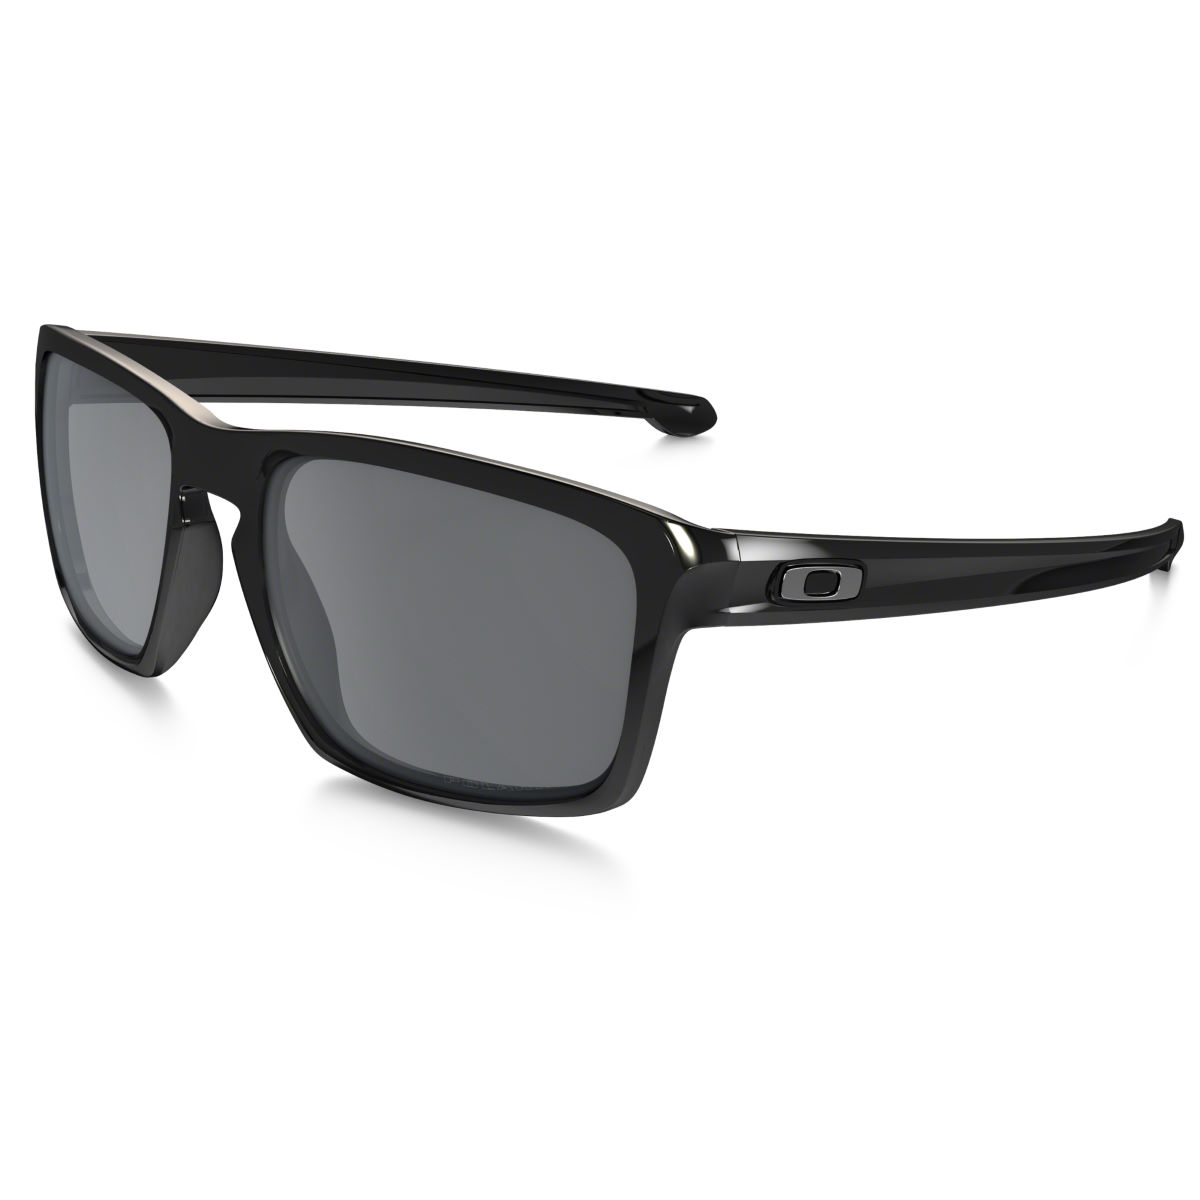 Oakley Sliver Iridium Polarised Sunglasses - One Size Polished Black